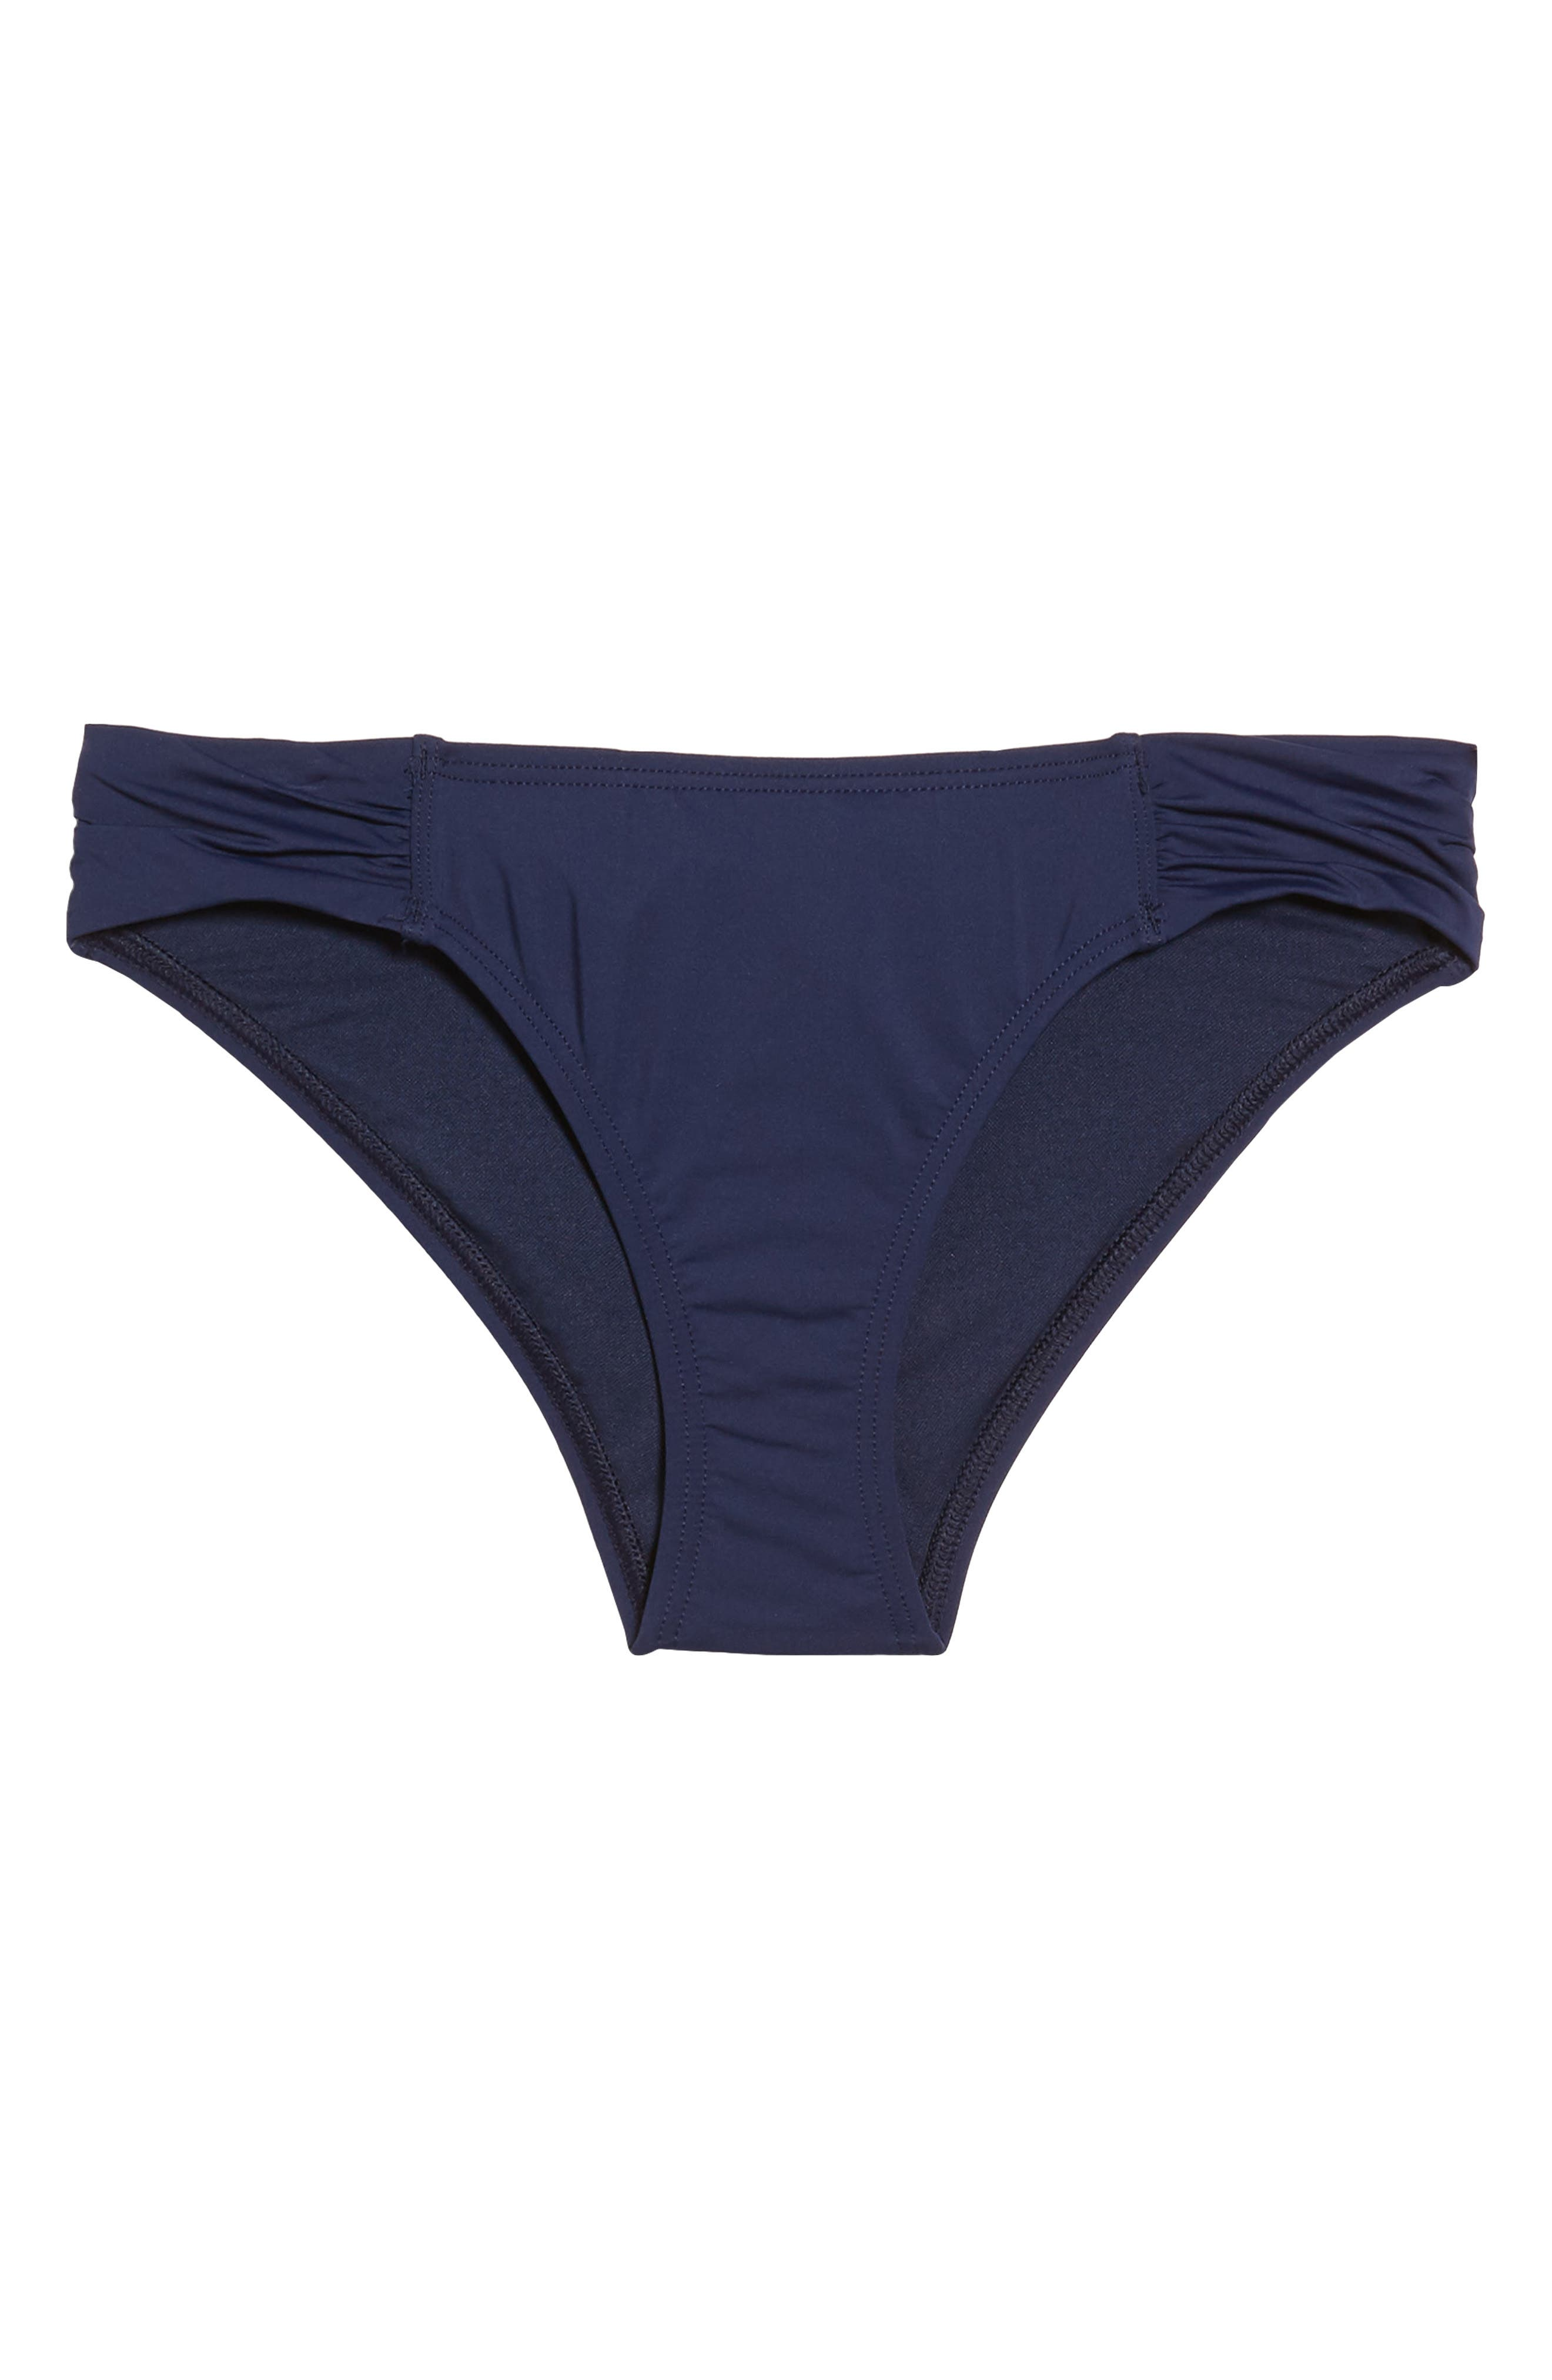 Pearl Shirred-Side Solid Hipster Swim Bikini Bottom in Mare Navy